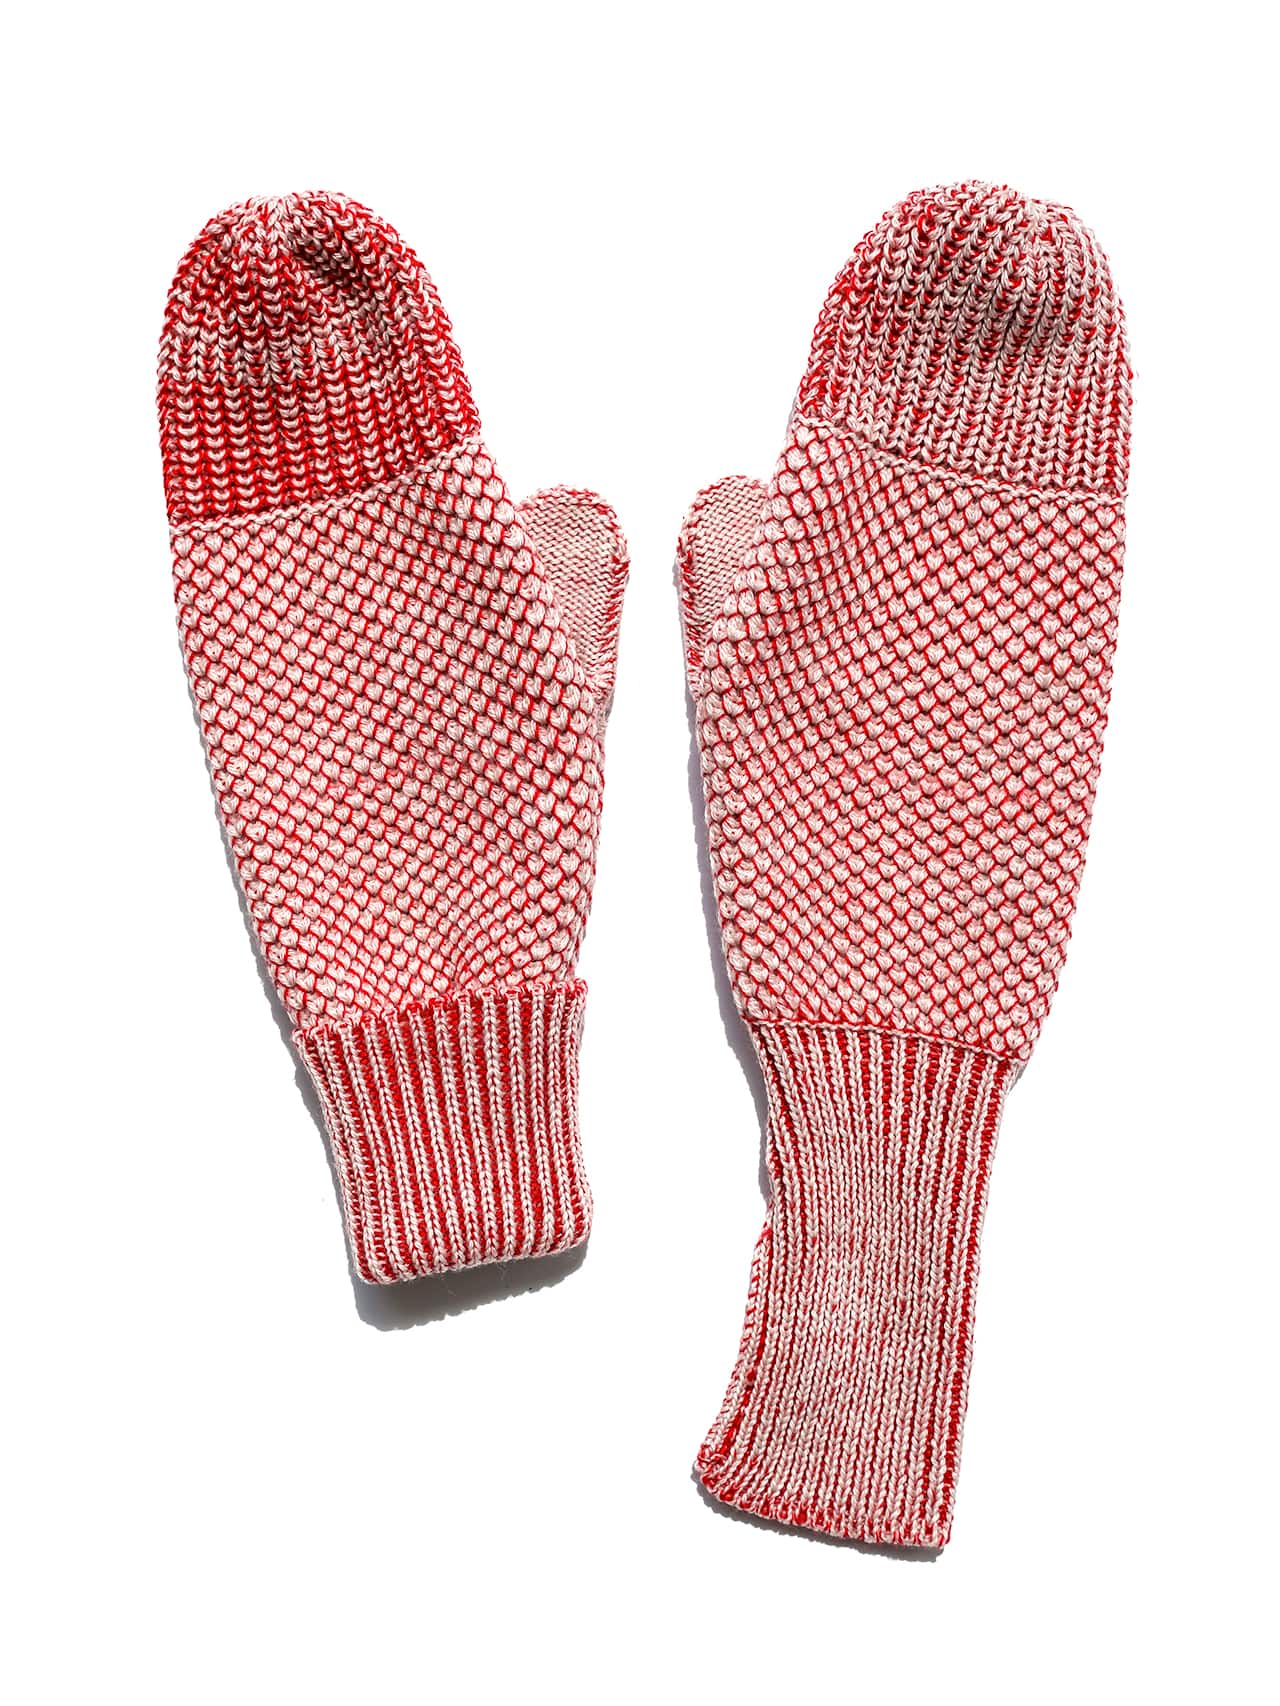 knit mittens - red & ivory